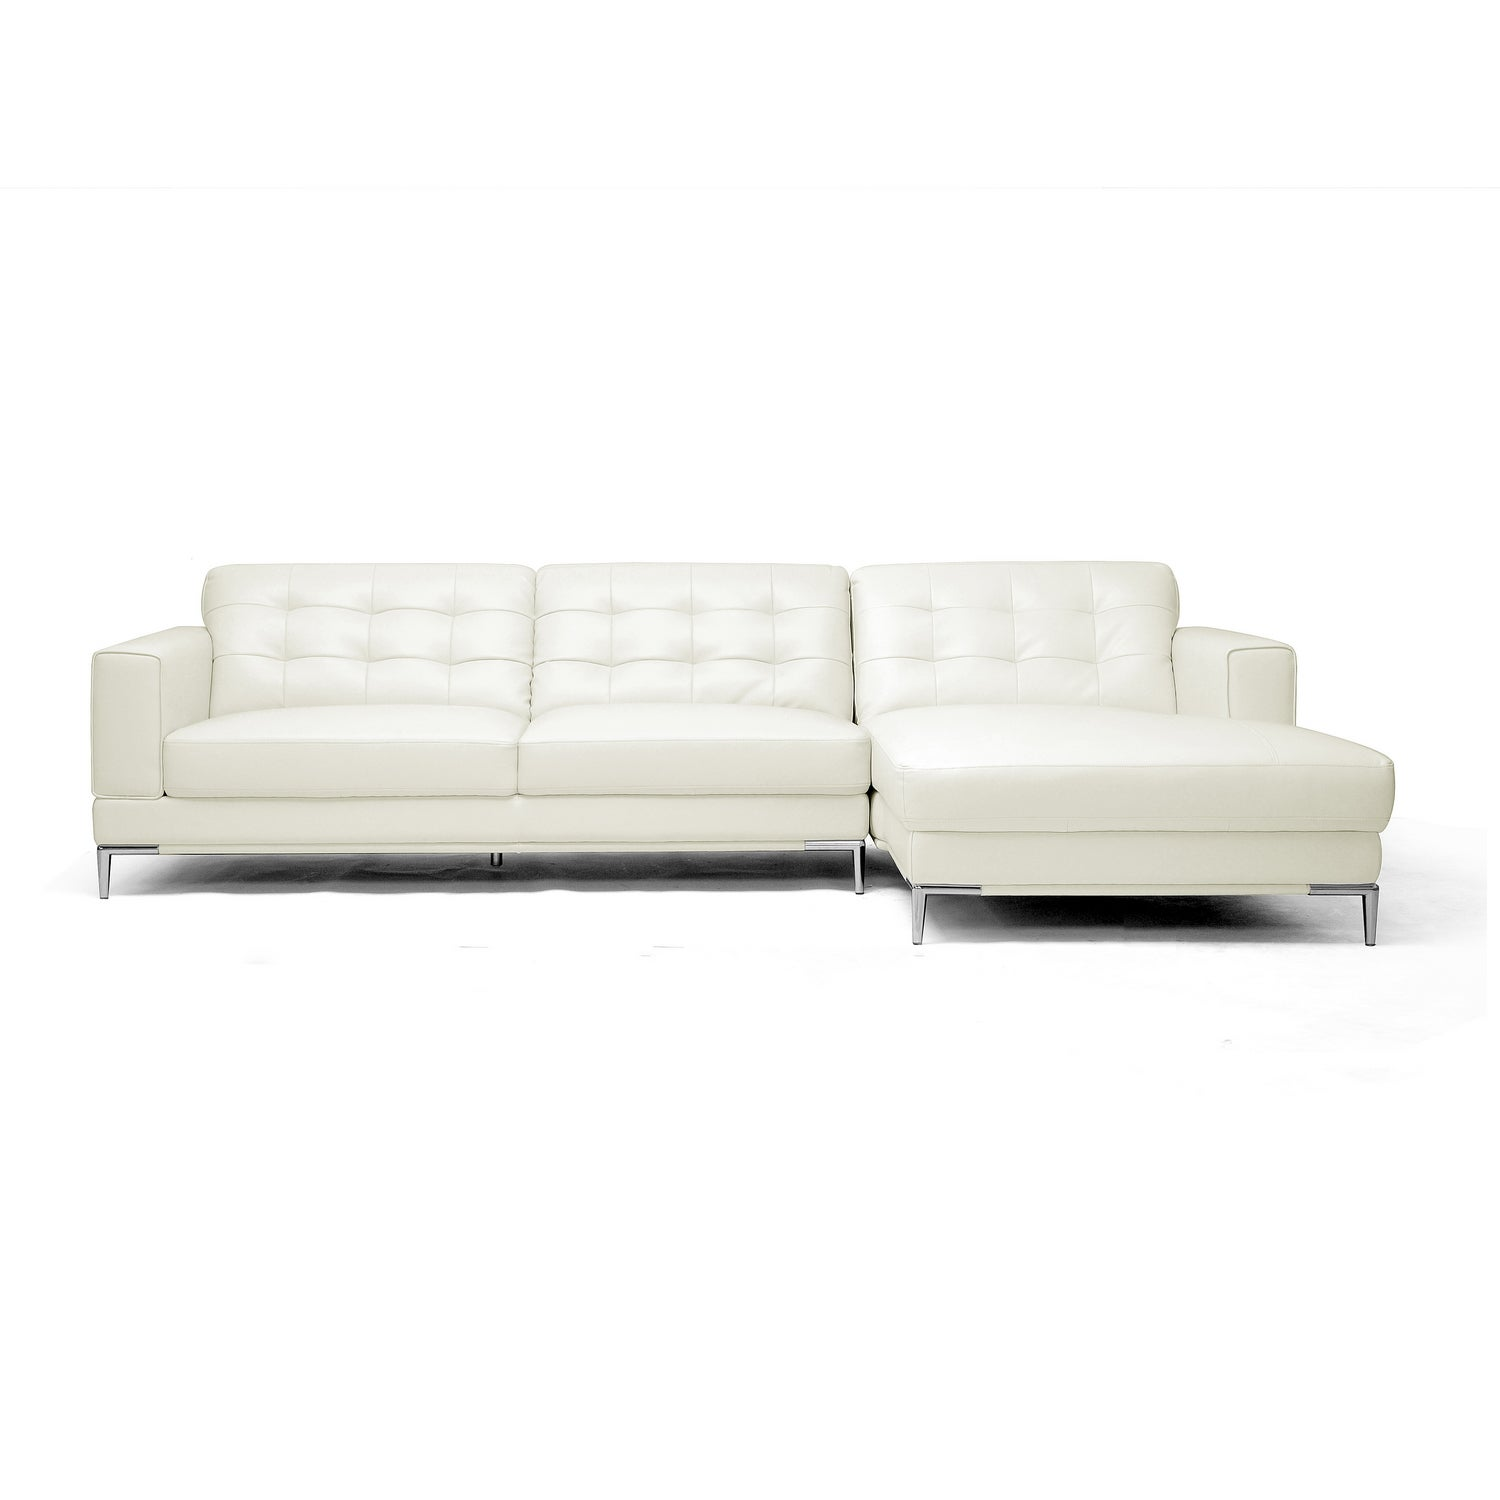 Babbitt Sleek Ivory Leather Modern Sectional Sofa